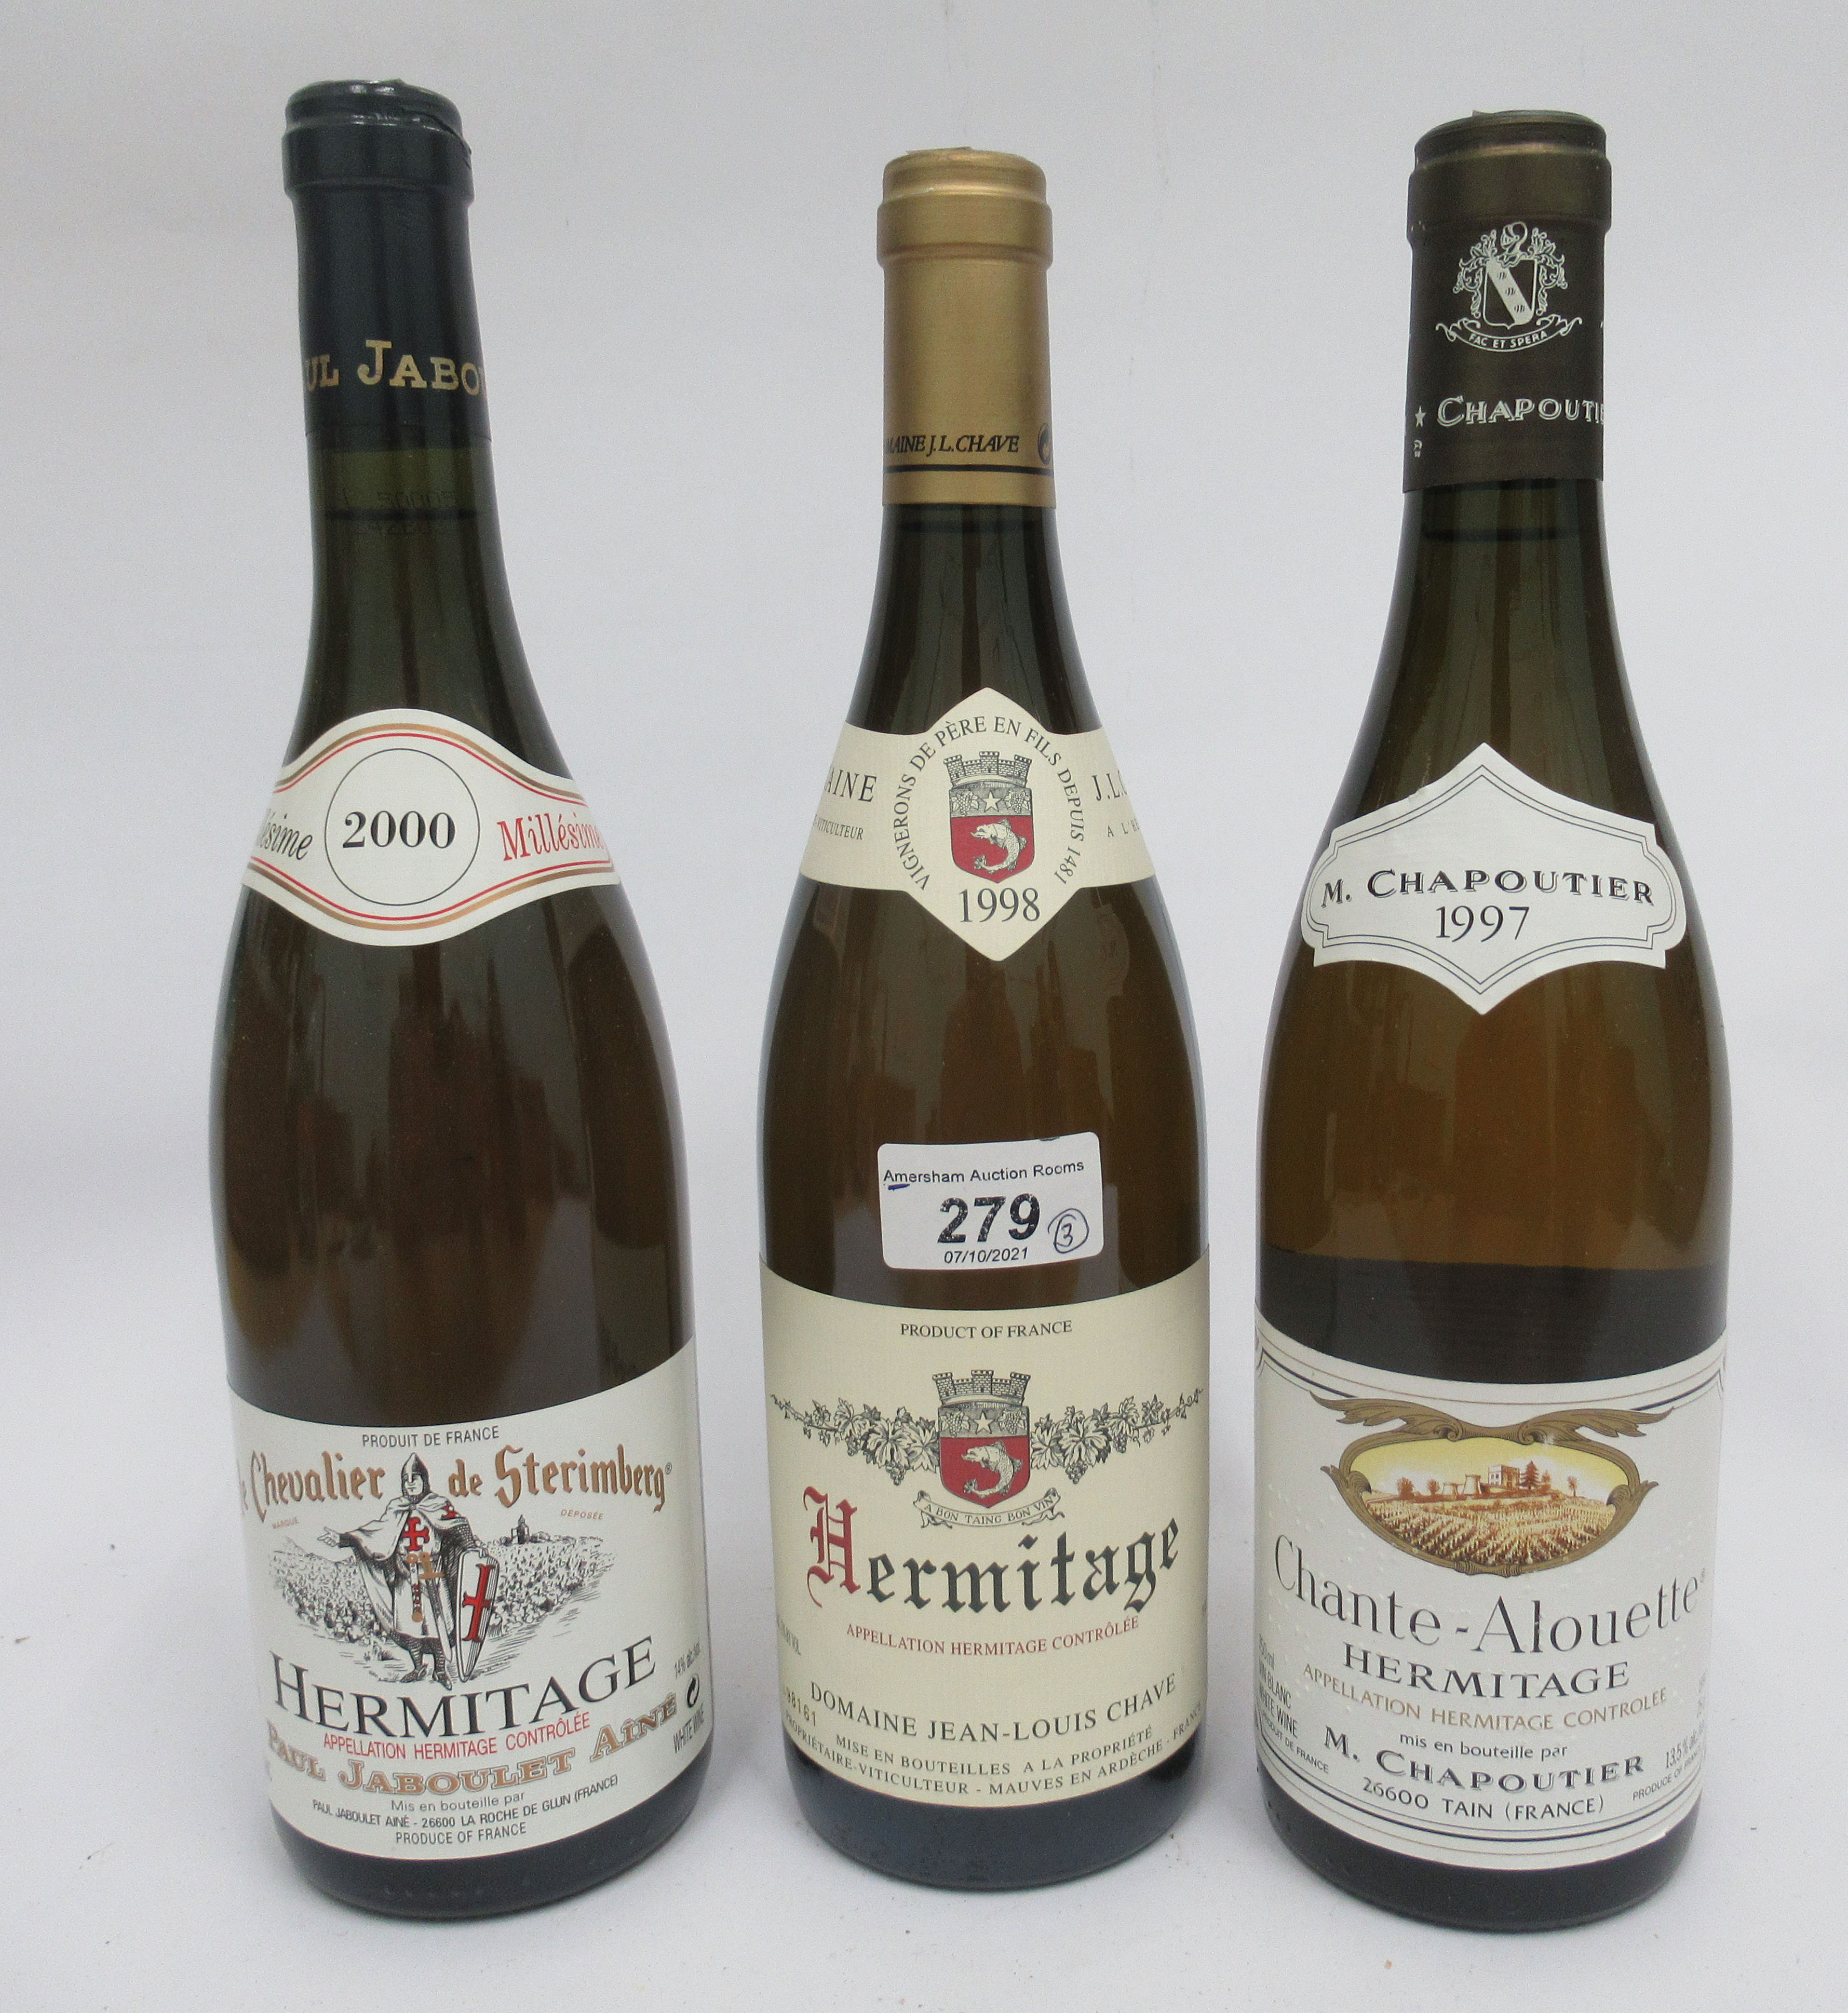 Wine, viz. a 1998 Hermitage Domaine Jean-Louis Chave; a 2000 Hermitage; and a 1997 Chante-Alouette